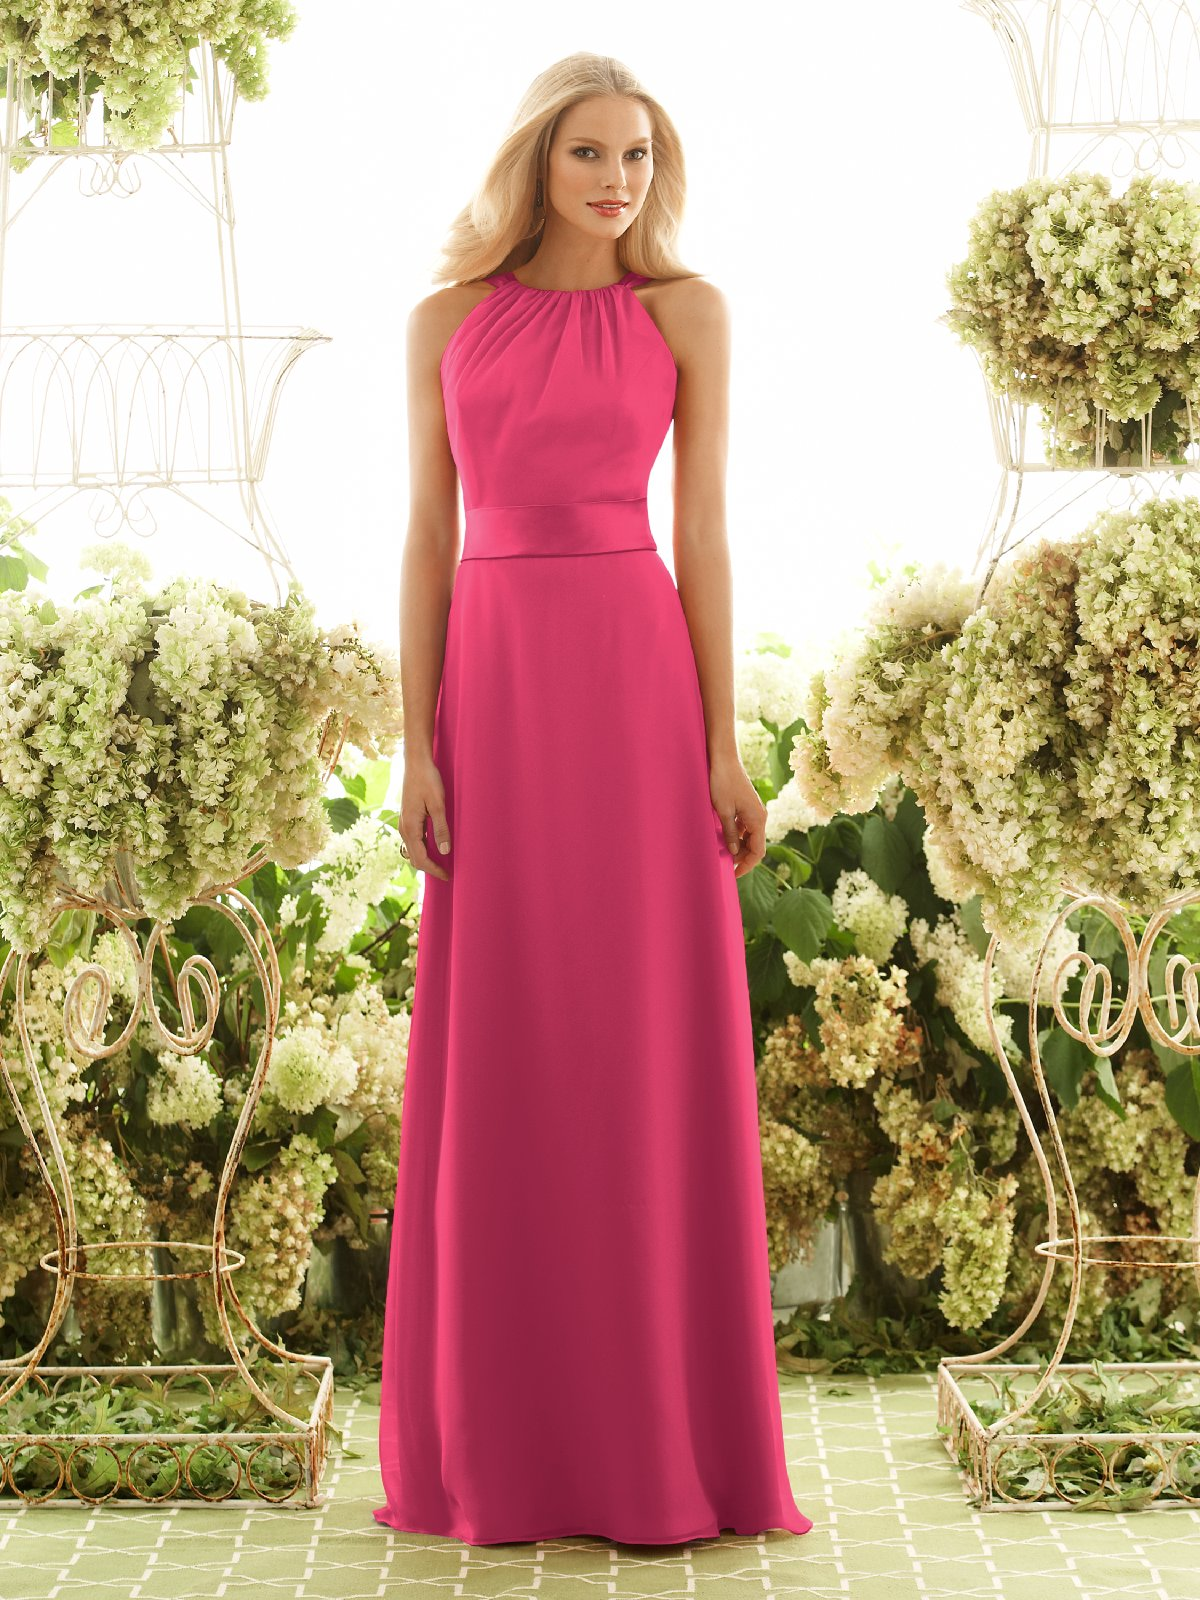 Pink A Line Bateau Floor Length Chiffon Prom Dresses With Satin Sash